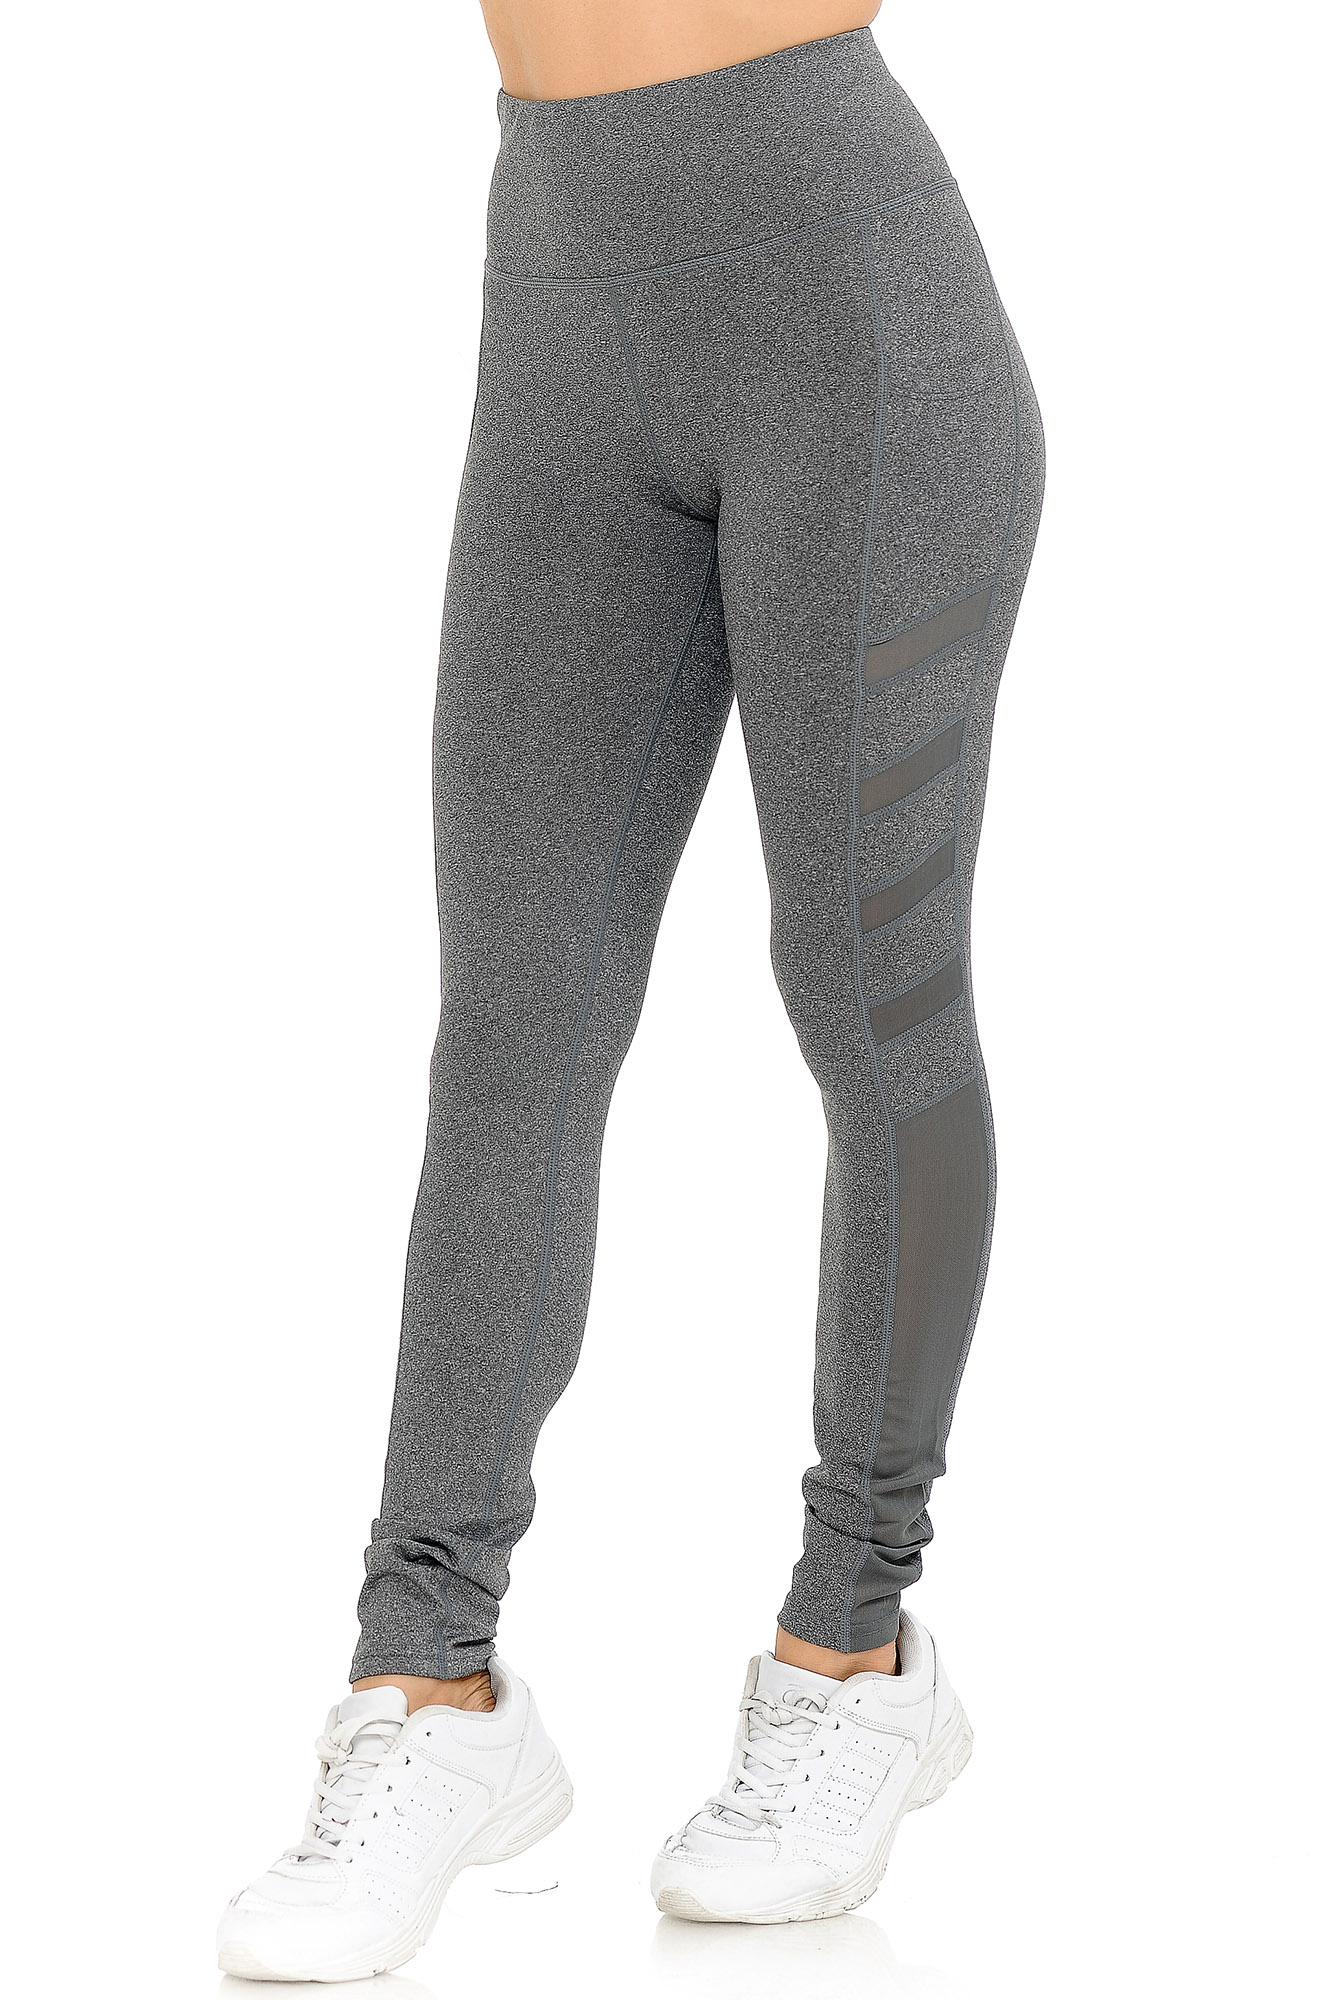 7f4cae0438 ... Charcoal Wholesale Fluid Motion High Waisted Side Mesh Workout Leggings  ...